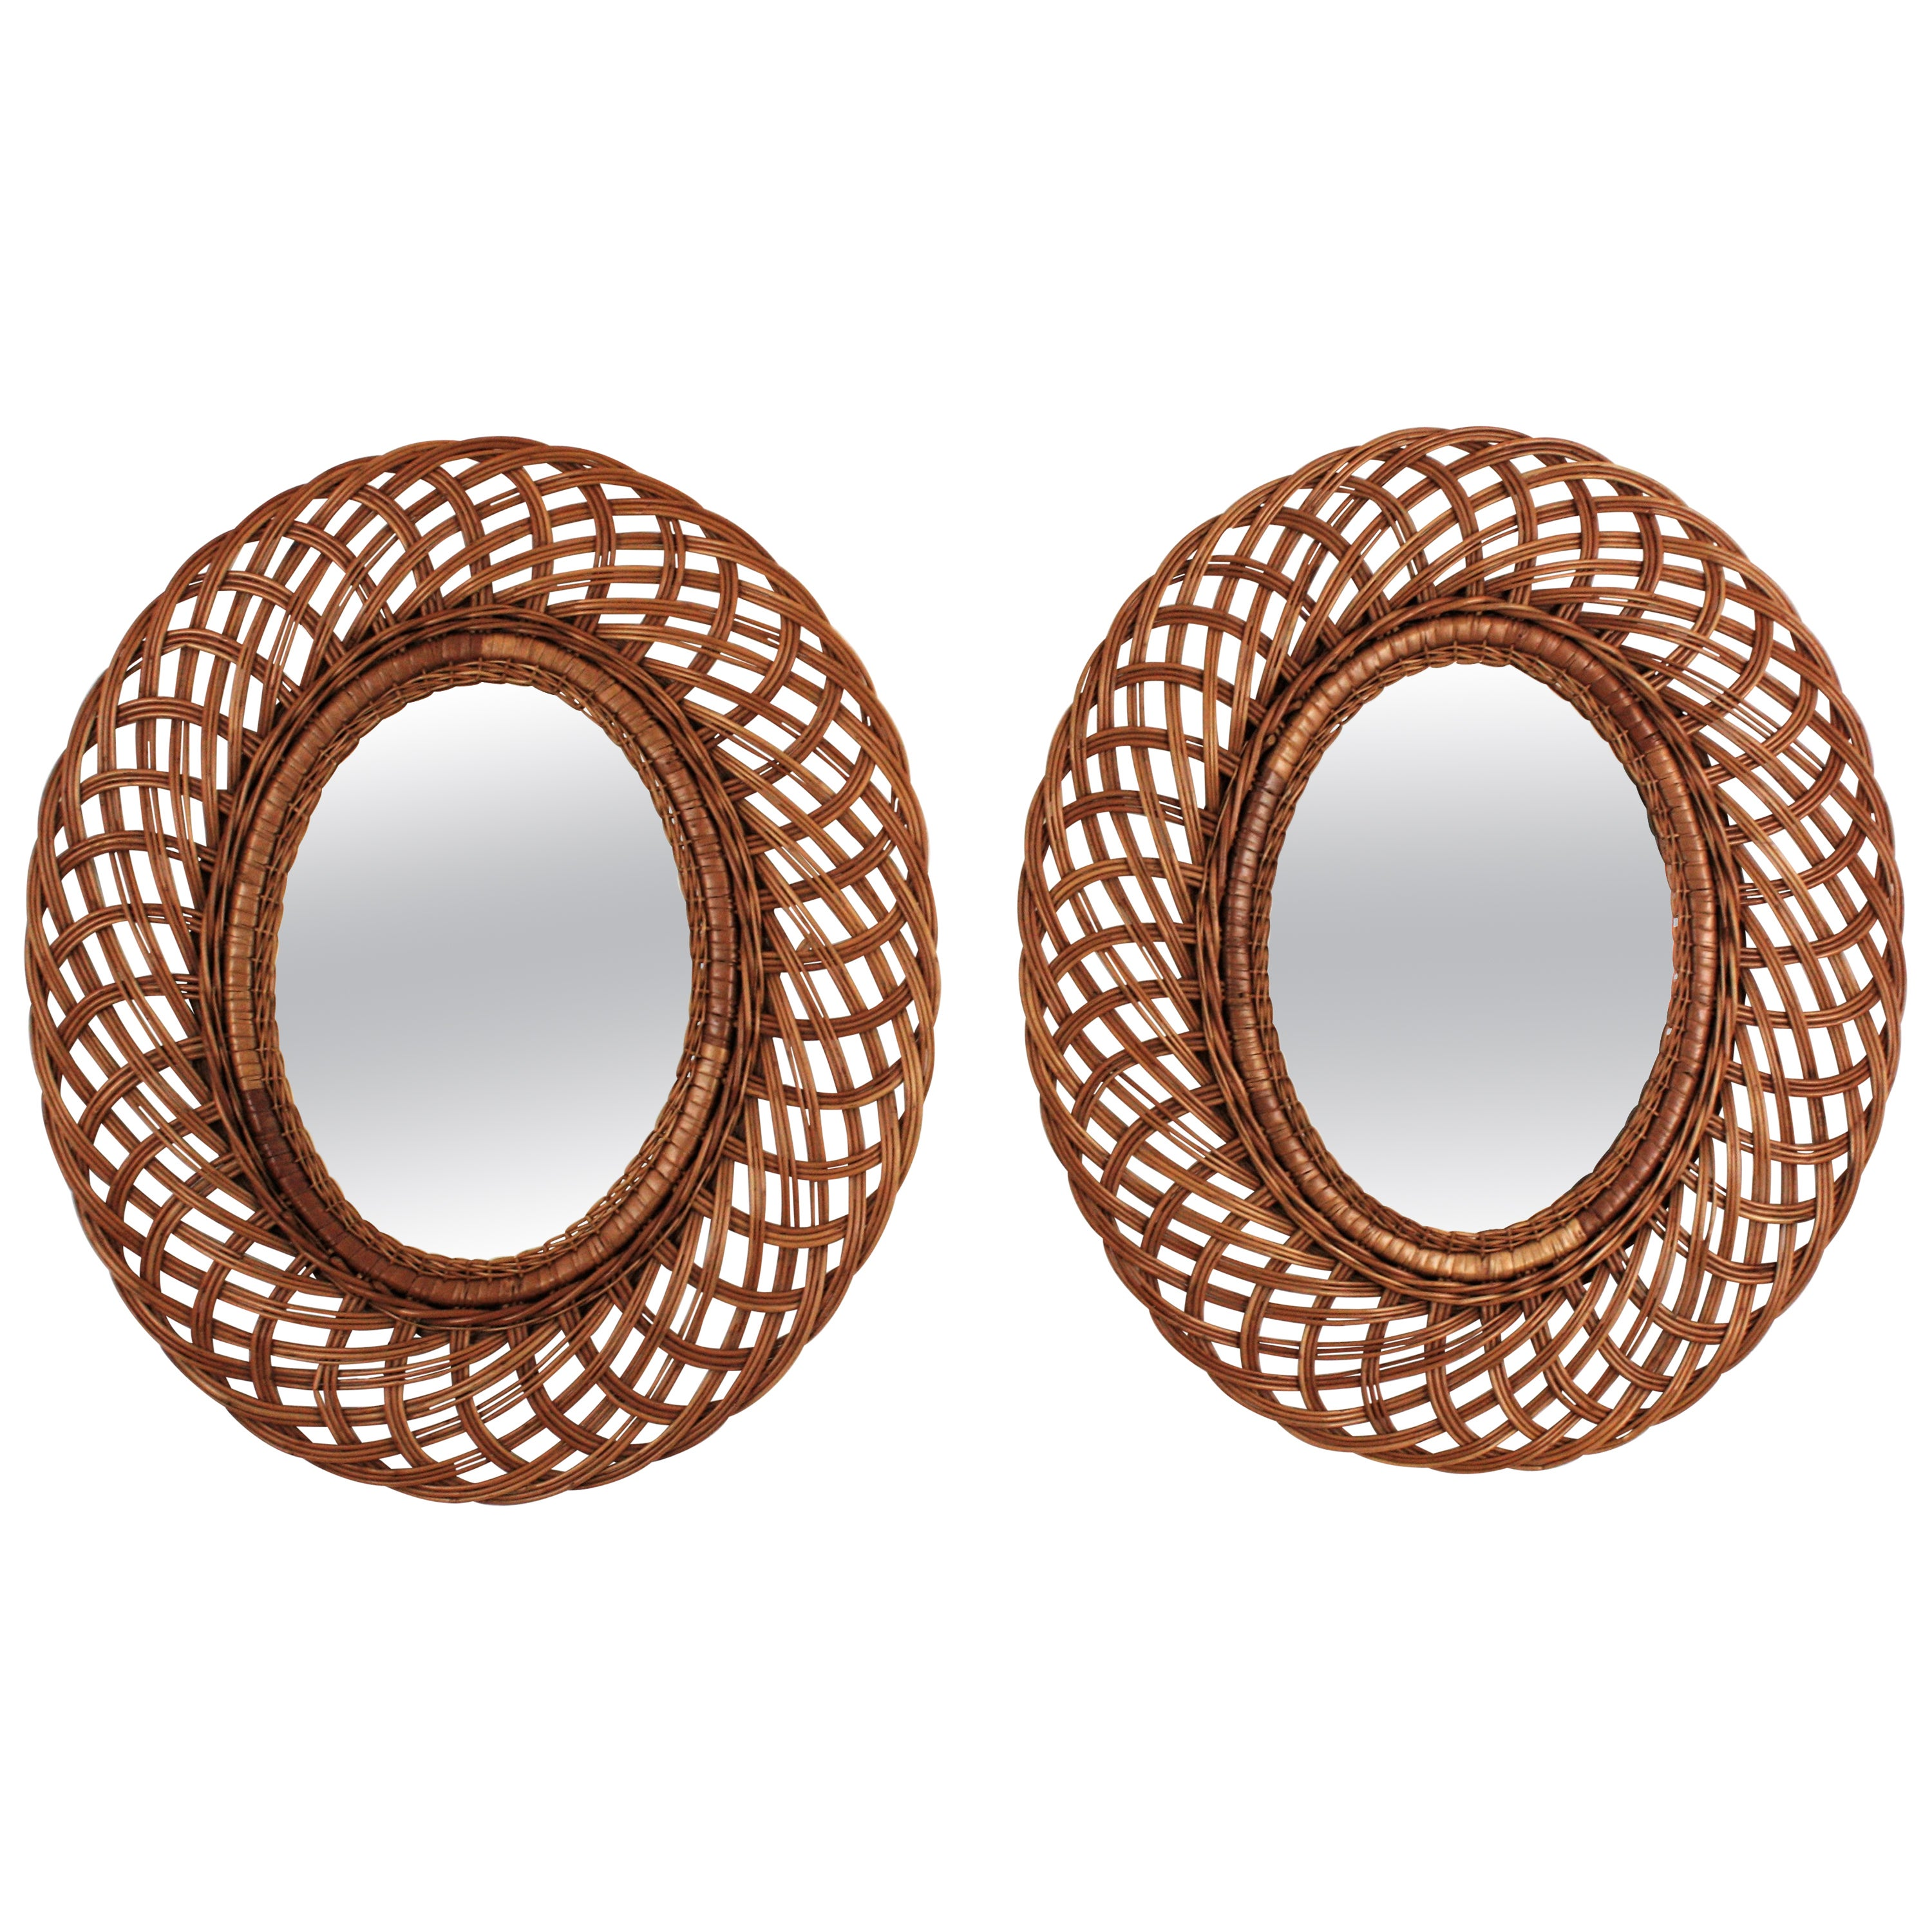 Pair of Rattan and Wicker Oval Mirrors, Spain, 1960s